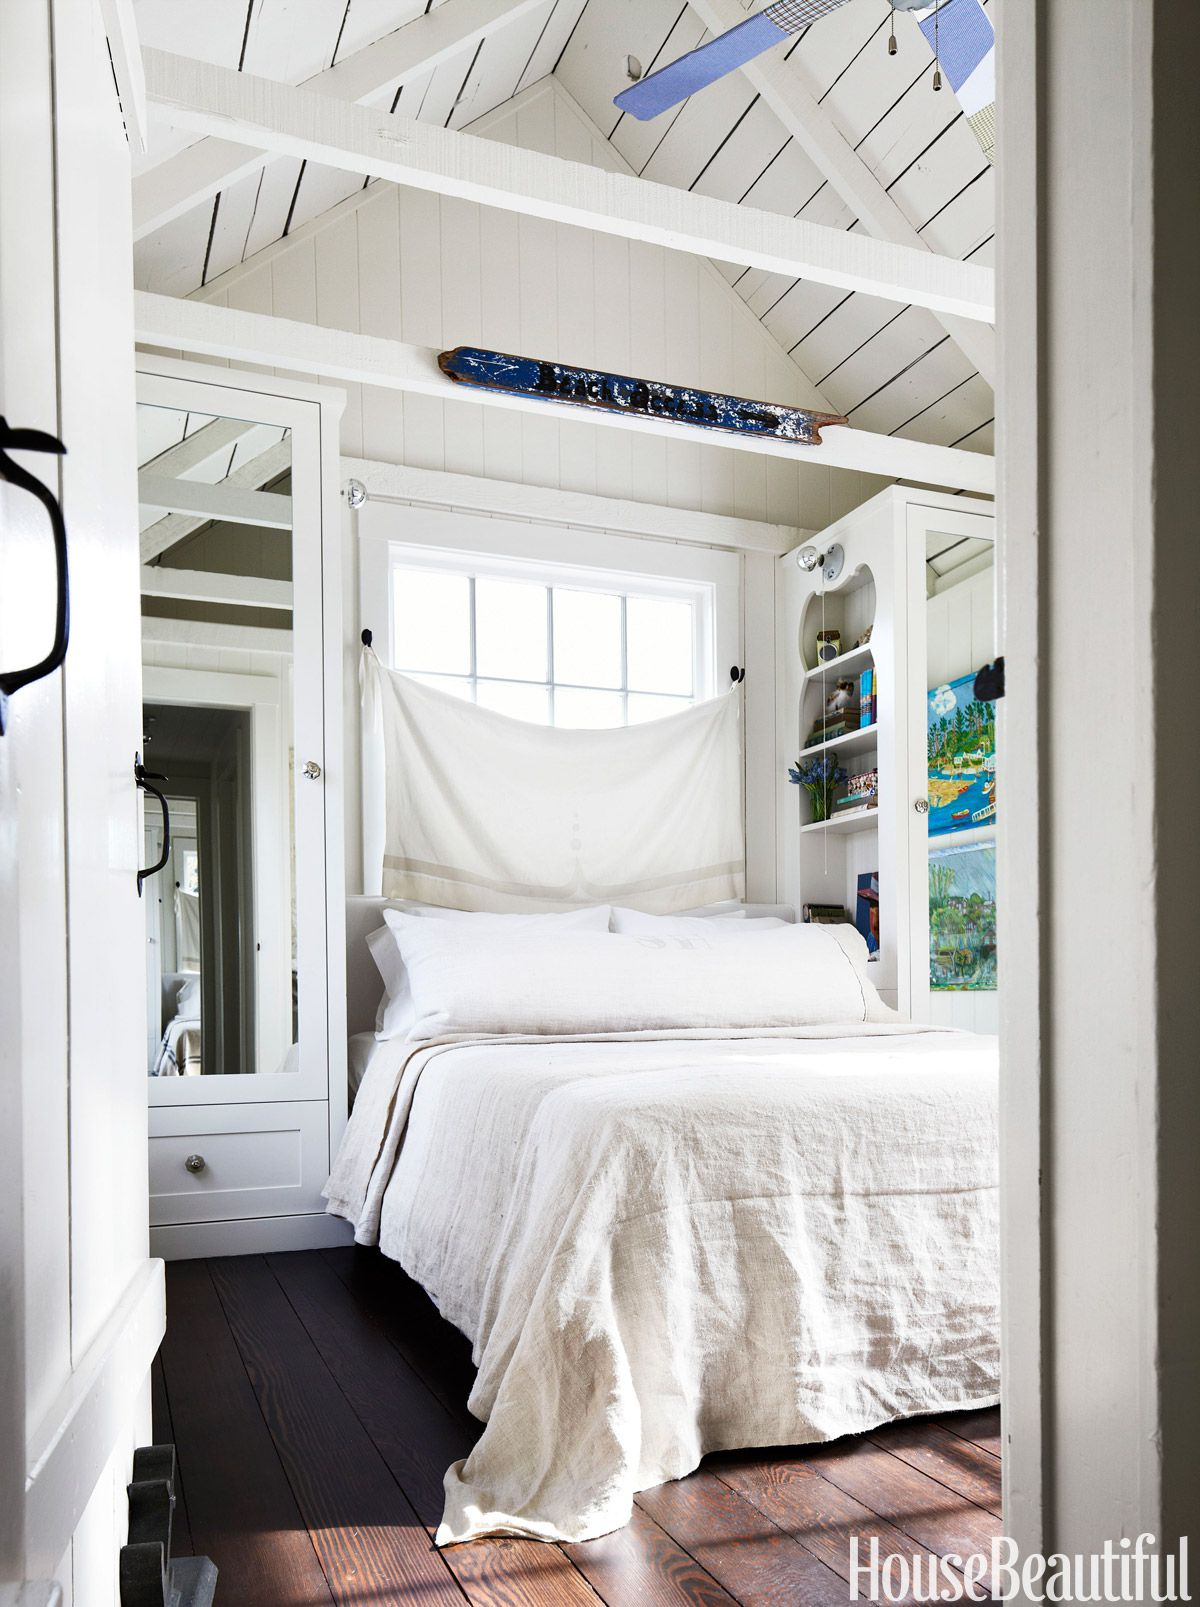 17 Small Bedroom Design Ideas - How To Decorate A Small Bedroom GVYJHXS